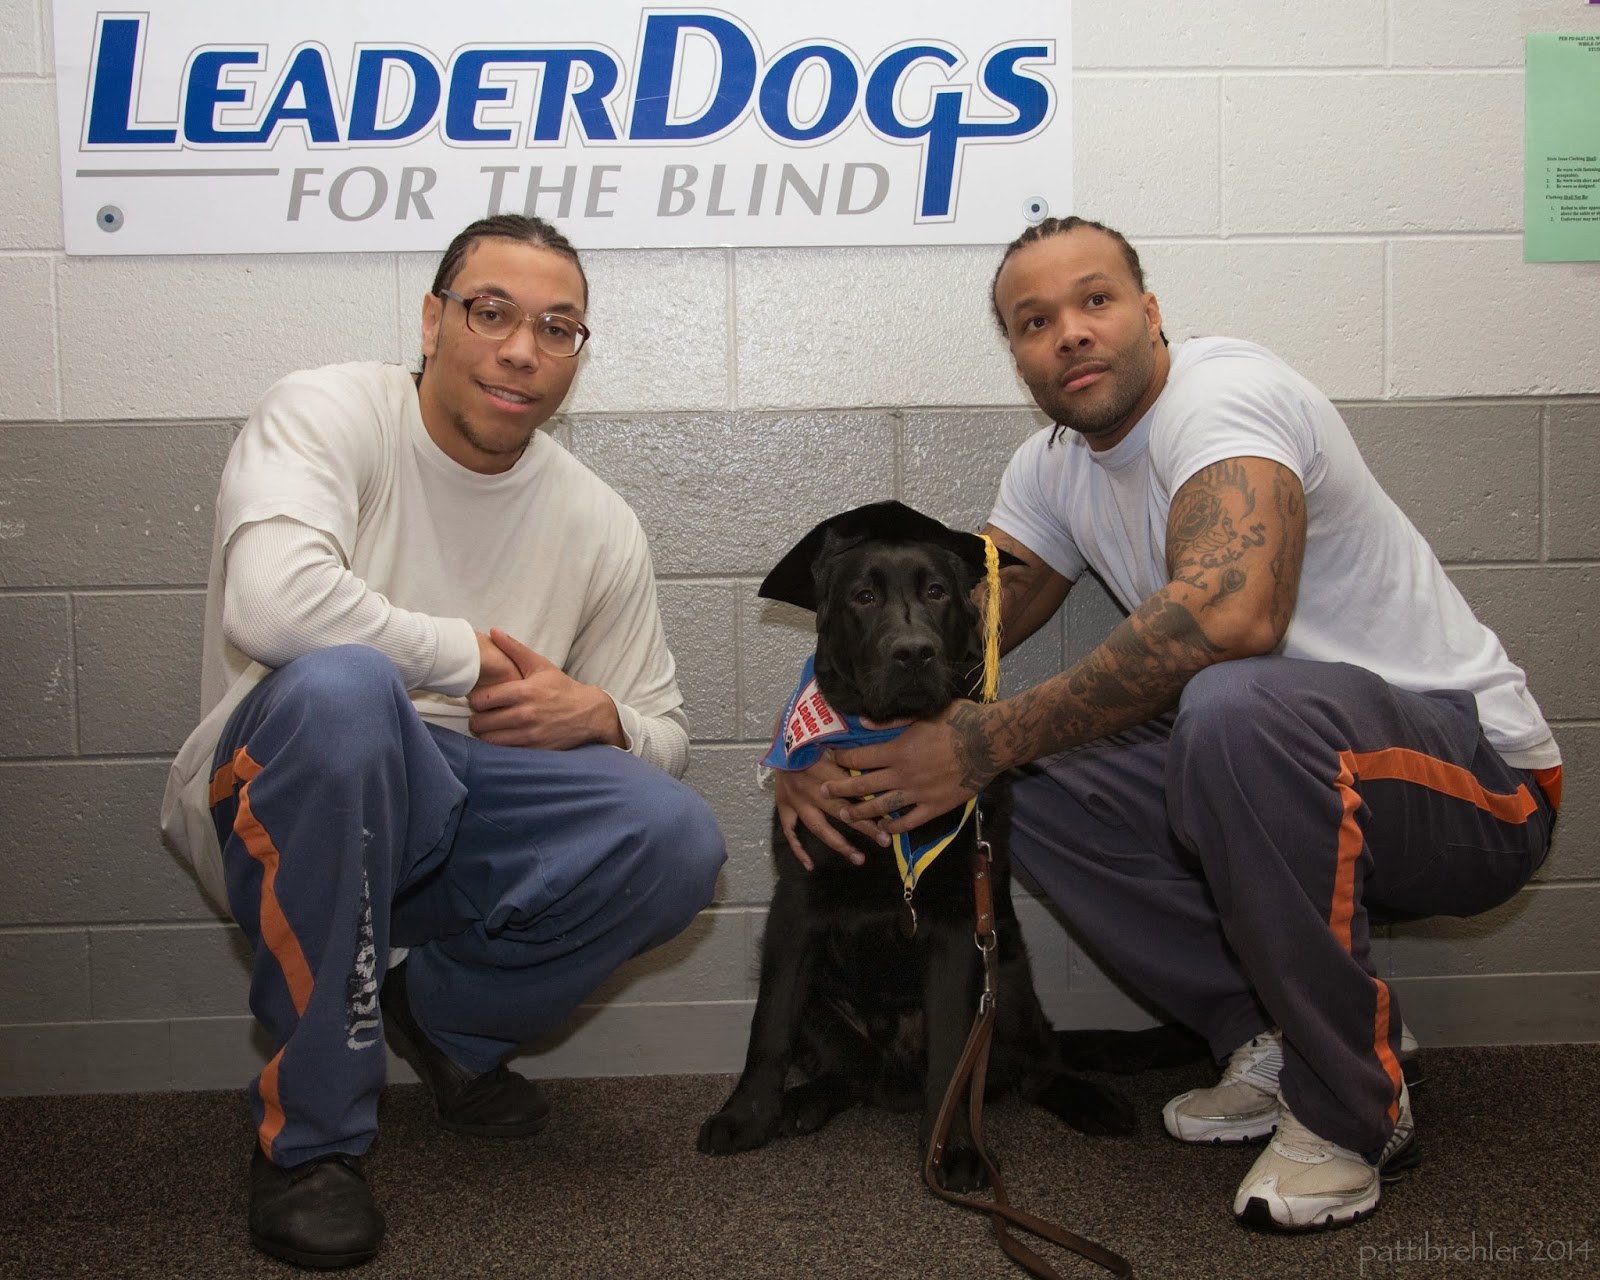 Two african american men are squatting with a black lab who is sitting between them. The men are wearing white t-shirts and blue pants and orange stripes. The man on the left has glasses. The lab has a black graduation cap on his head and is wearting a blue bandana. The man on the right has his hands around the dog. Behind them on the wall is a white poster with Leader Dogs for the Blind on it.